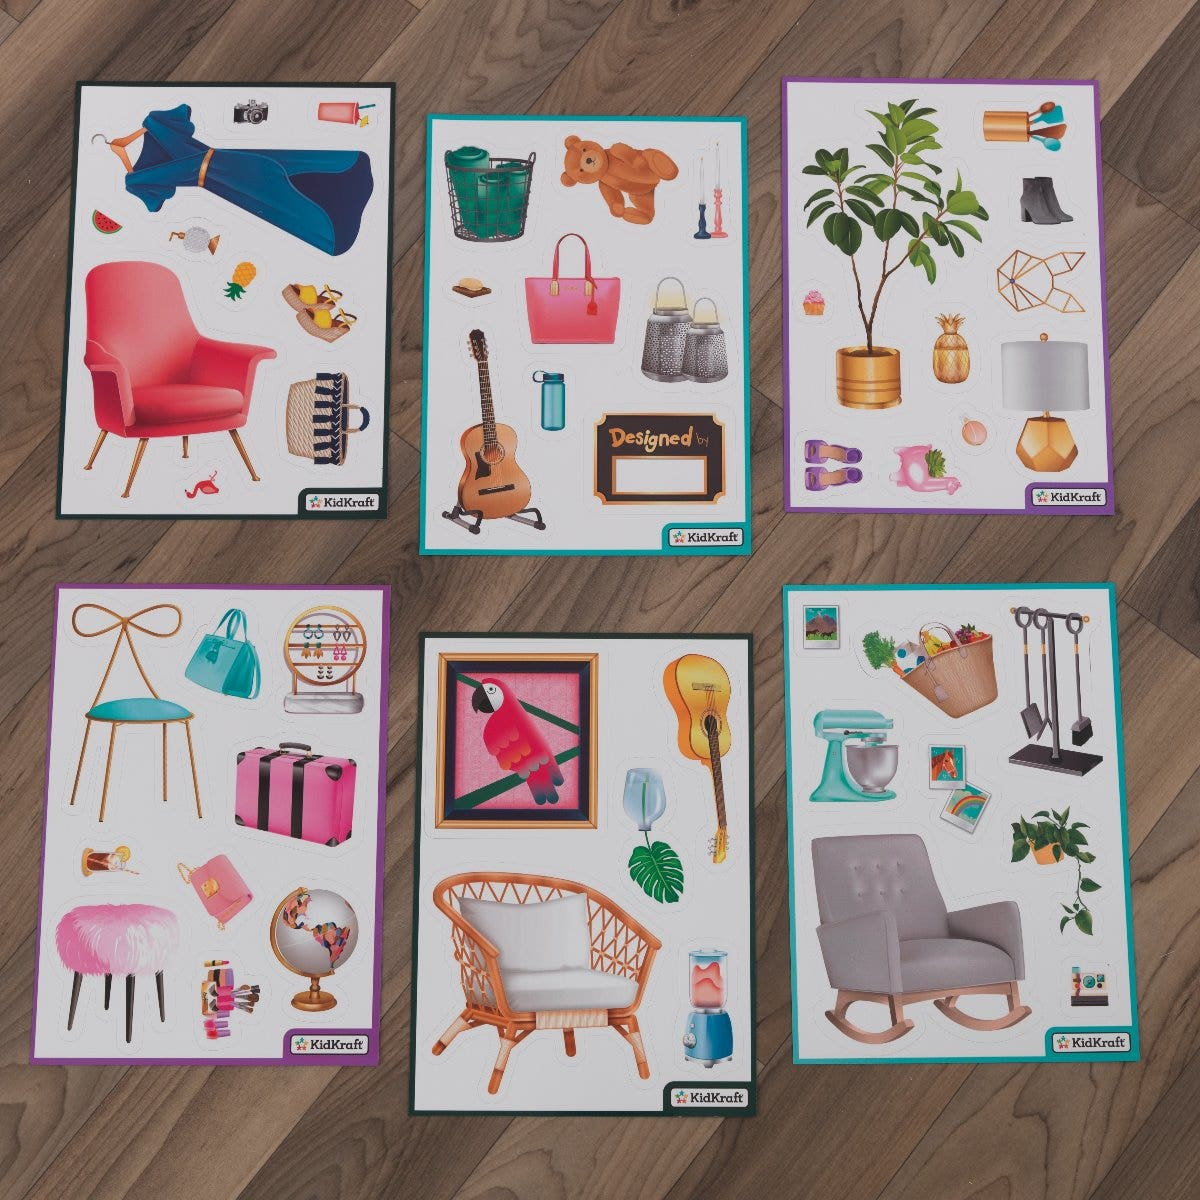 6 magnet sheets with over 50 magnets of different styles and varying accessories